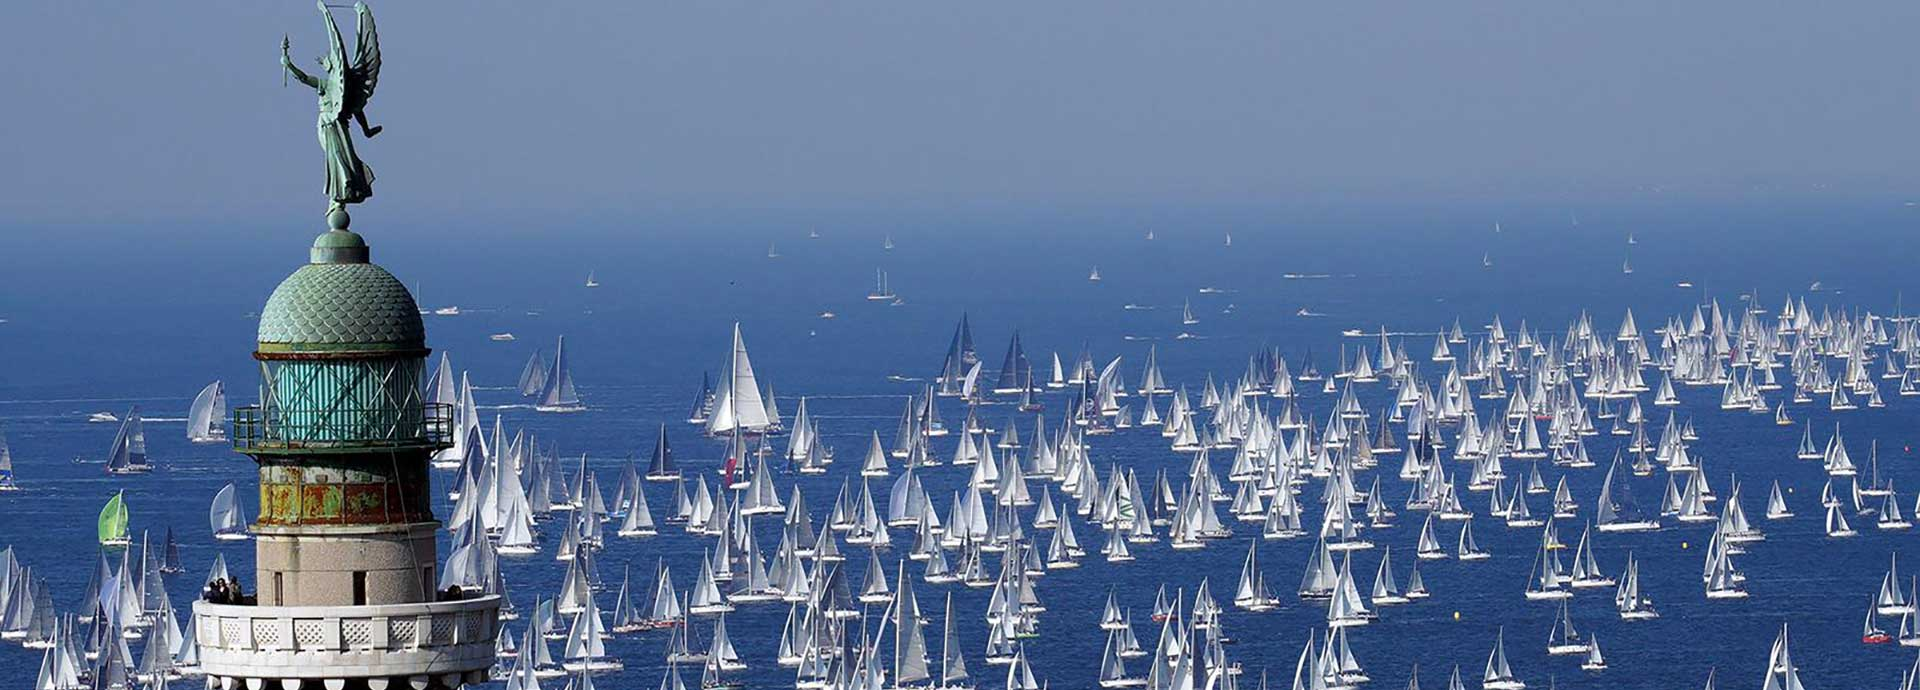 Barcolana 50 A race to remember